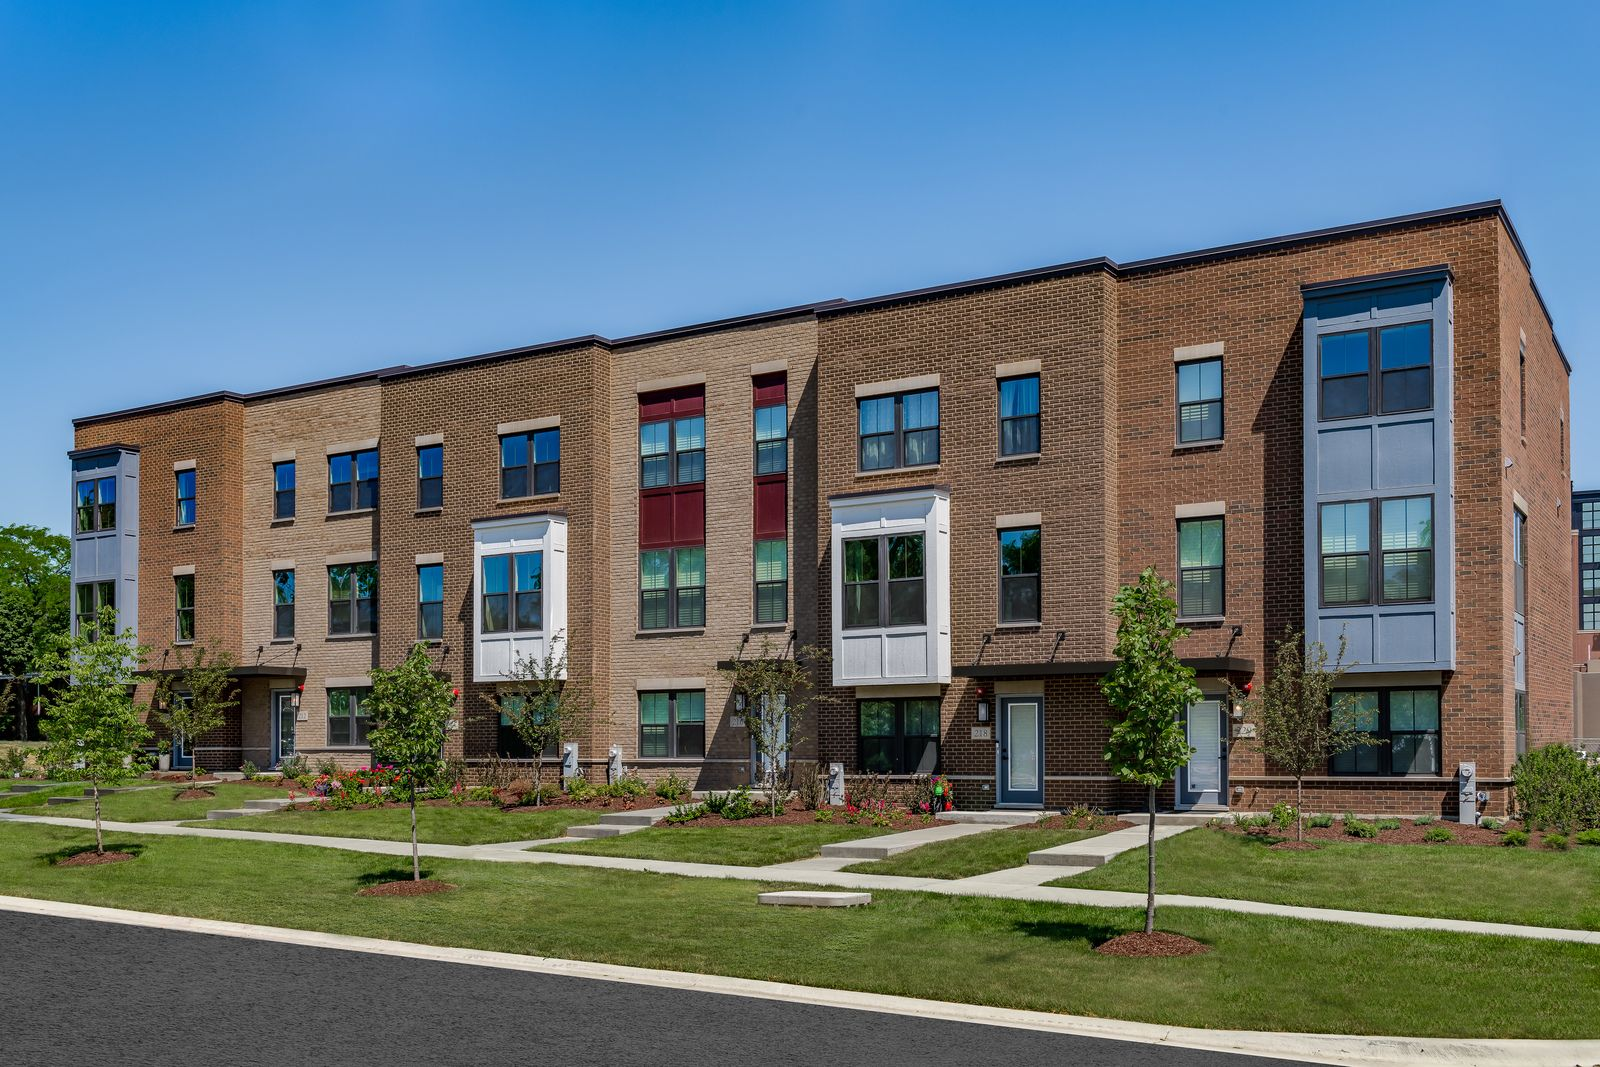 Welcome to Maple Street Rowhomes - New Building Just Released!:Own a brand new townhome with included luxury finishes and private 2-car garage. Walk to the Metra, Lions Park, schools, & charming Downtown Mt. Prospect.Schedule your visit today!